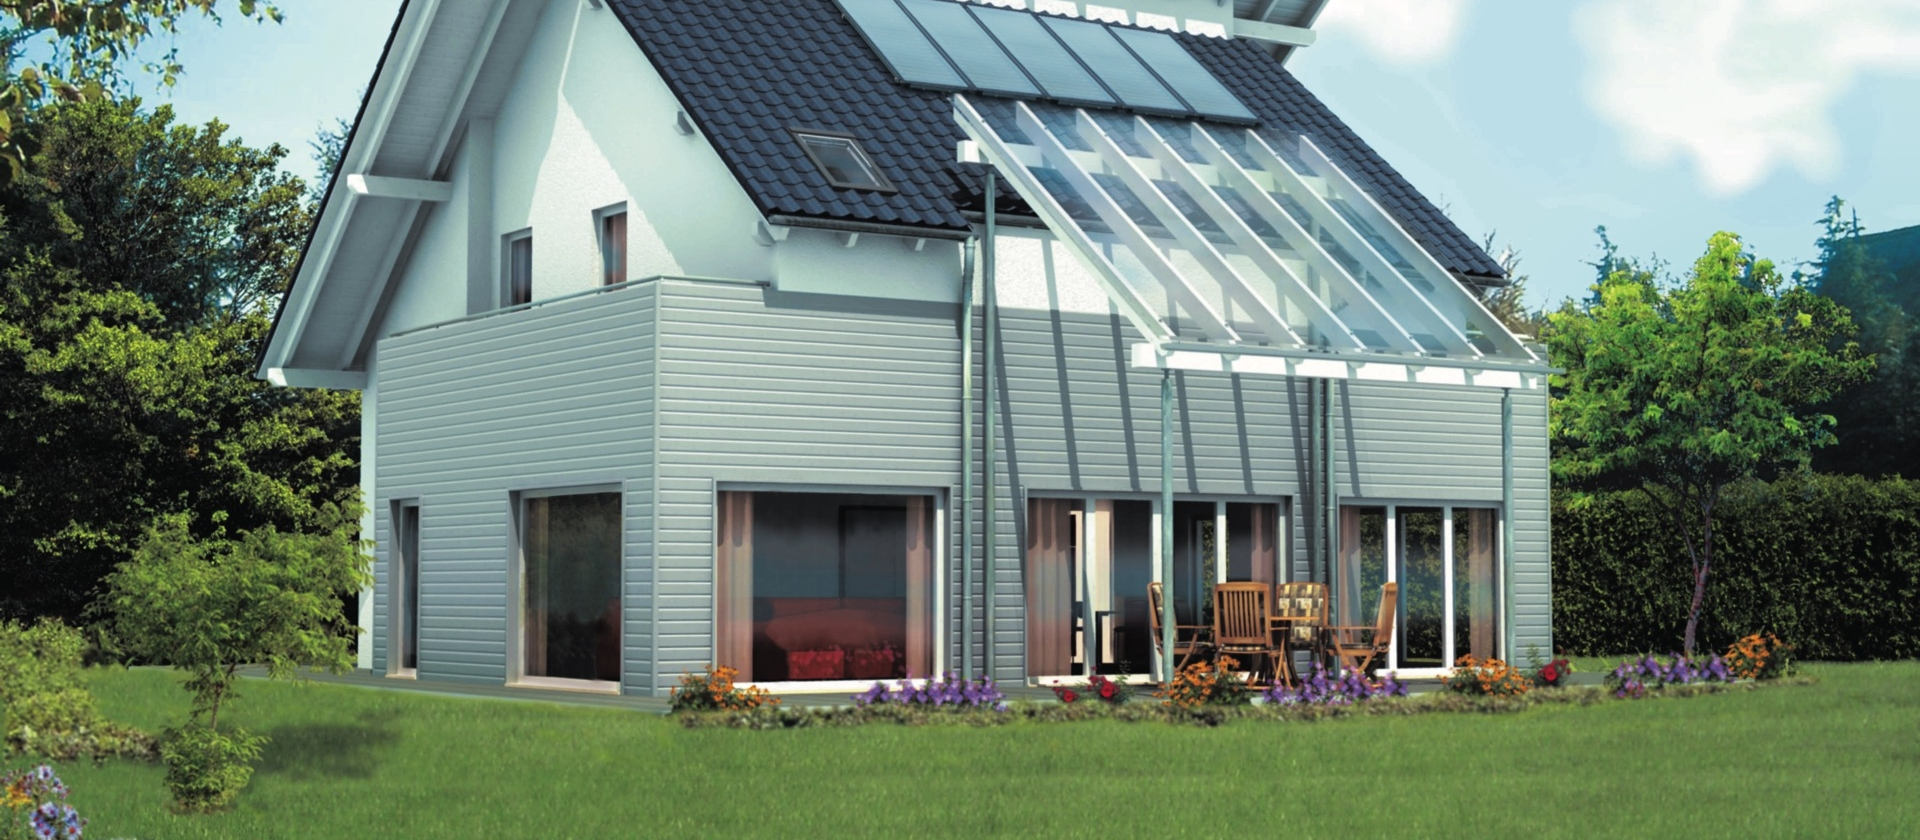 Solar, hme automation, hot water, heating, house